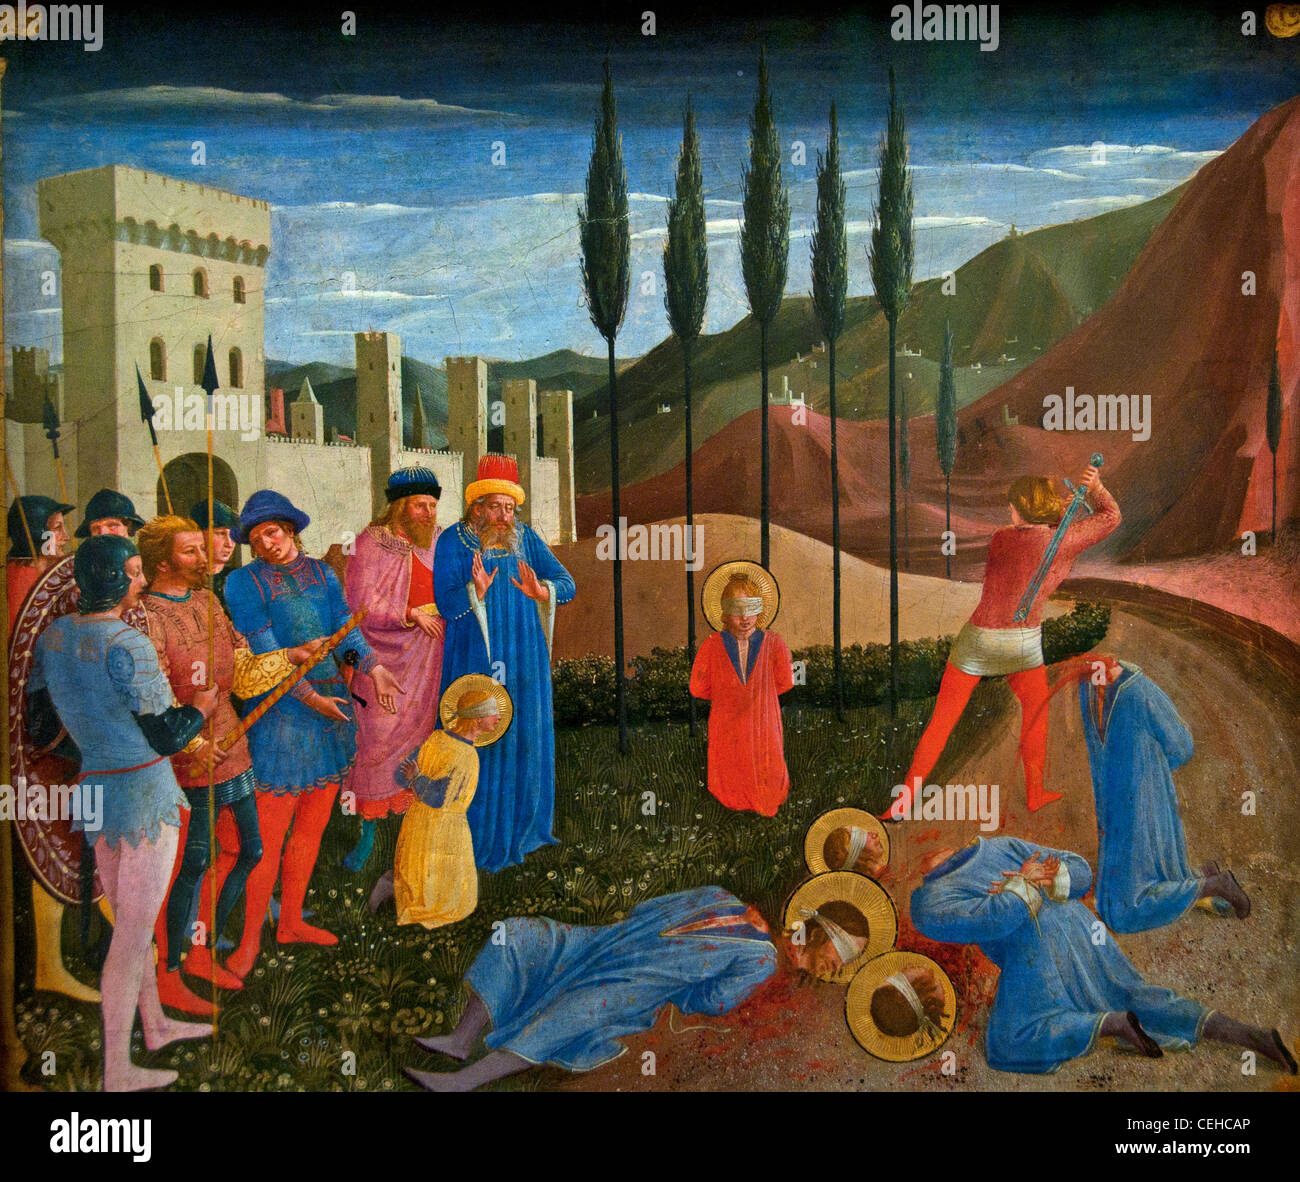 The martyrdom of Saints Cosmas and Damian - Le martyre des saints Cosme et Damien 1438 FRA ANGELICO Guido di Pietro - Stock Image